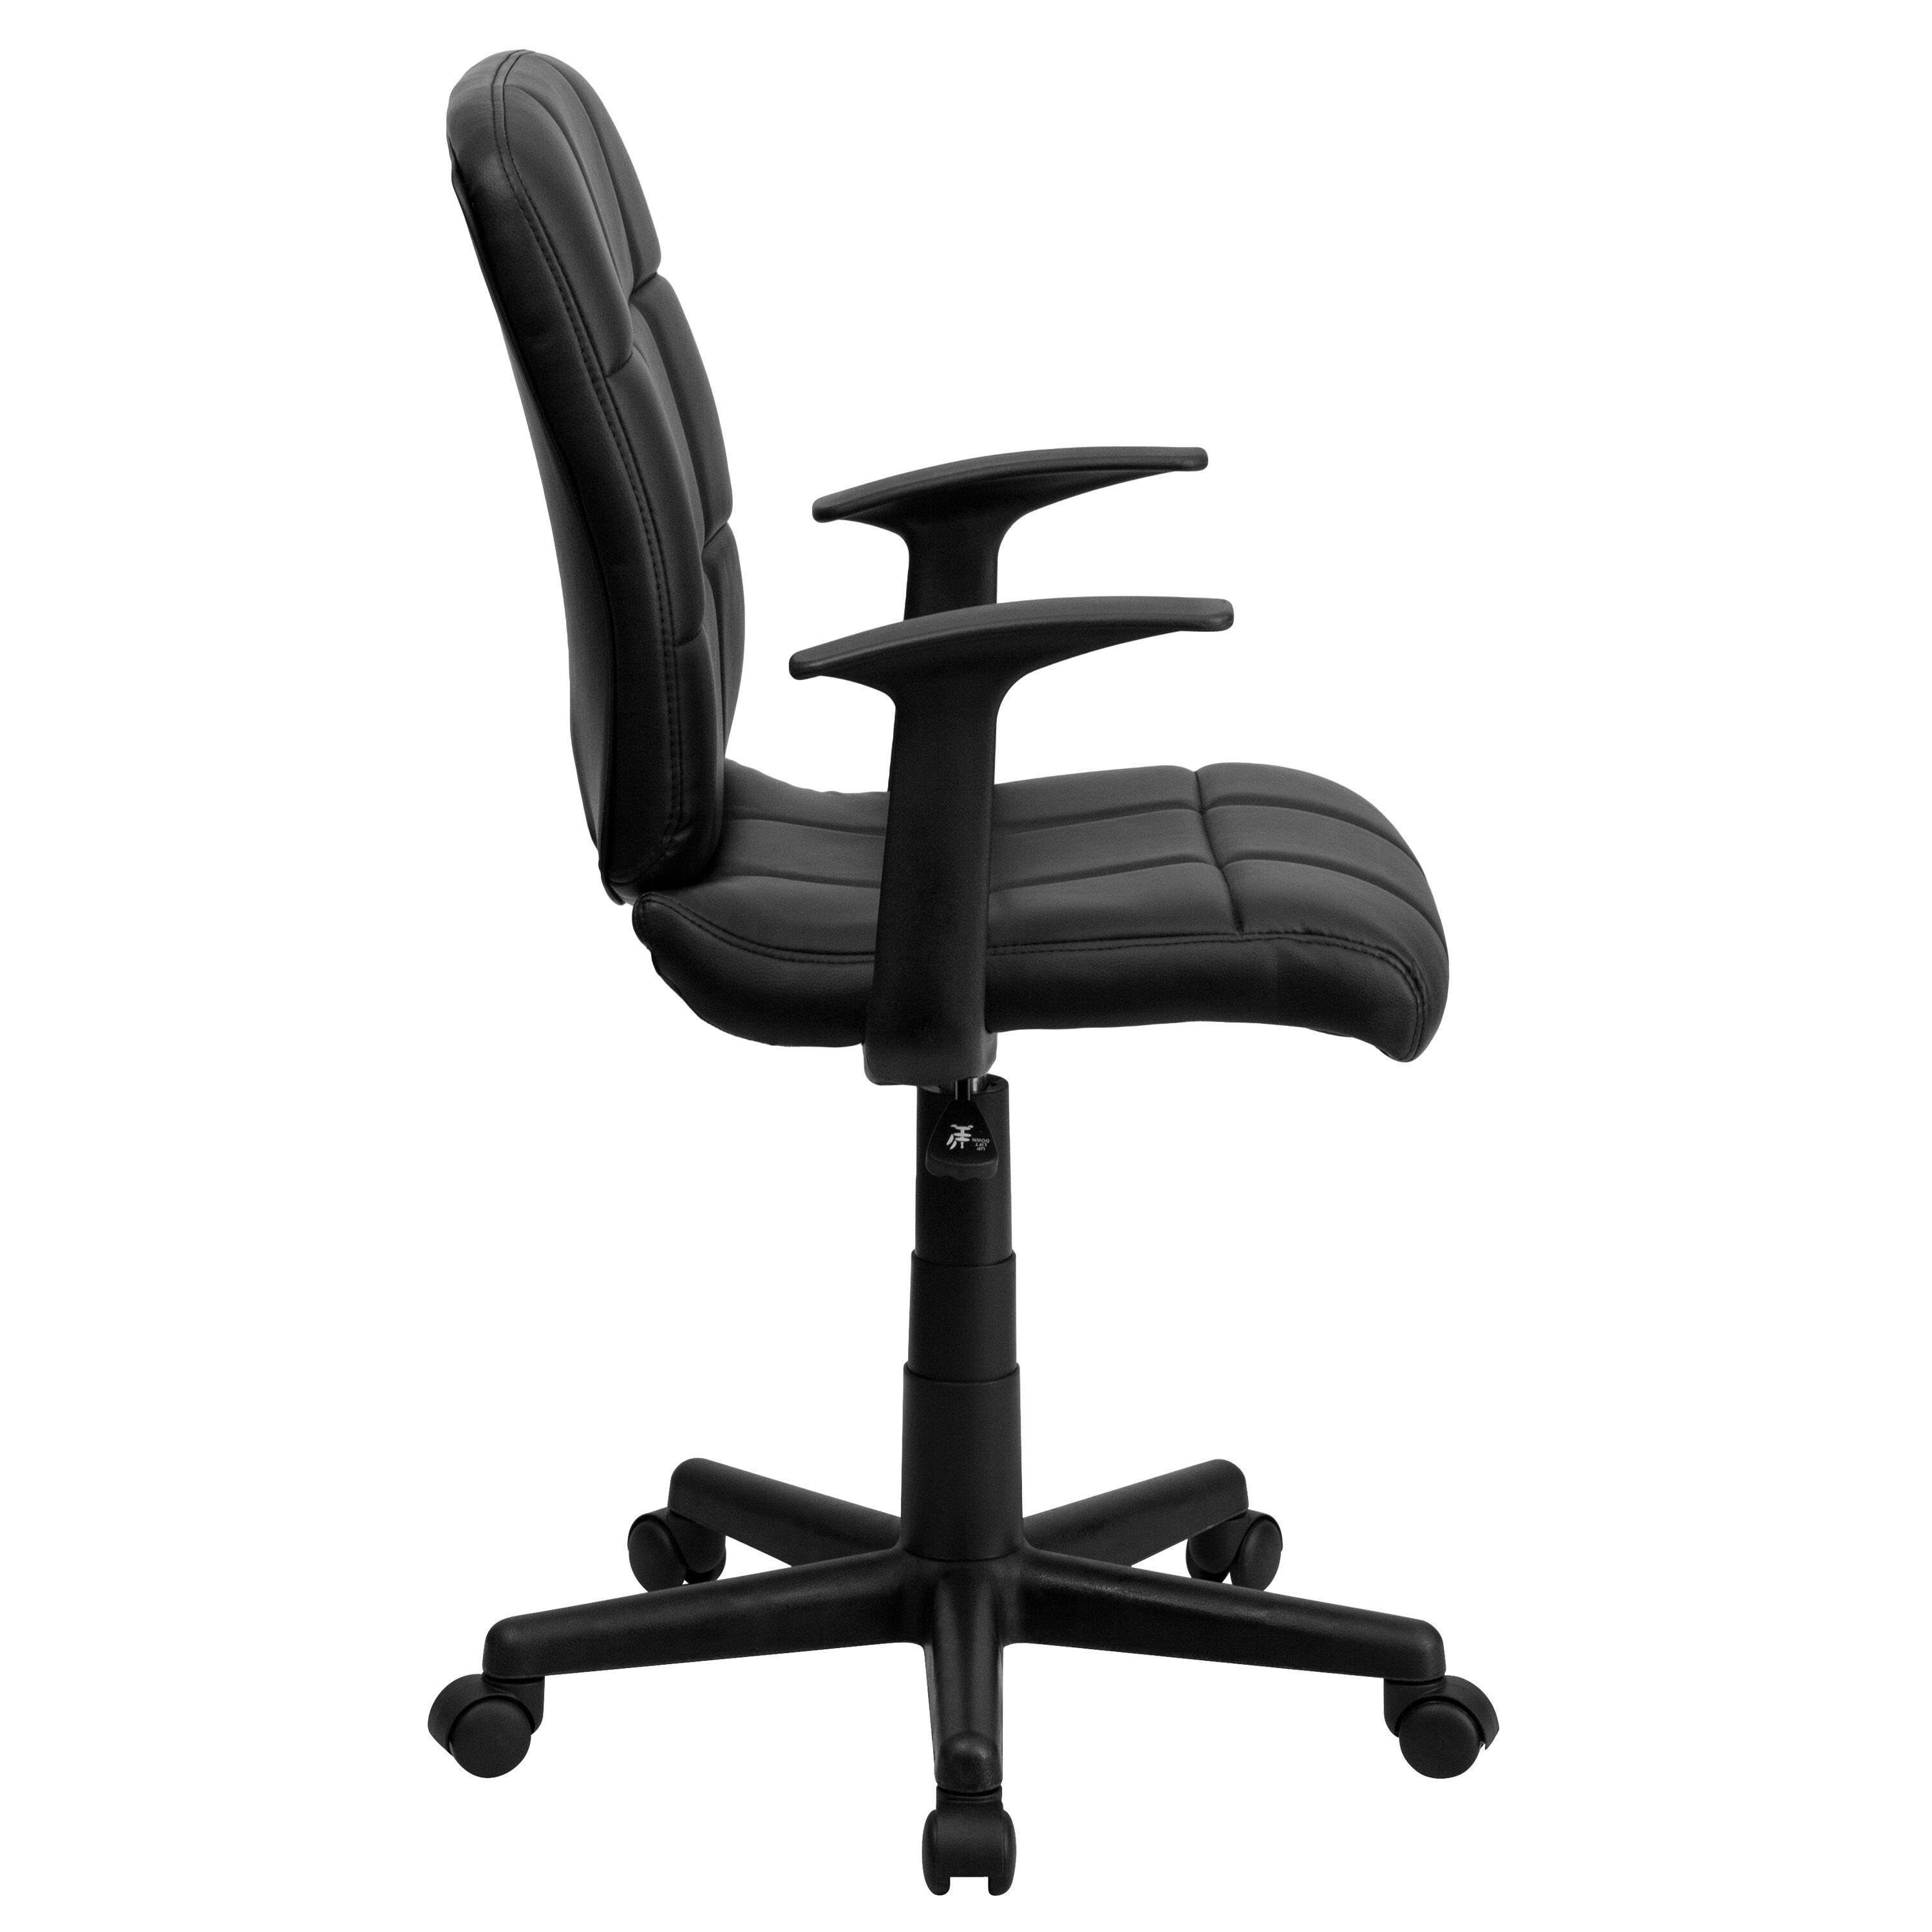 quilted swivel chair outdoor egg black mid back task go 1691 1 bk a gg schoolfurniture4less com